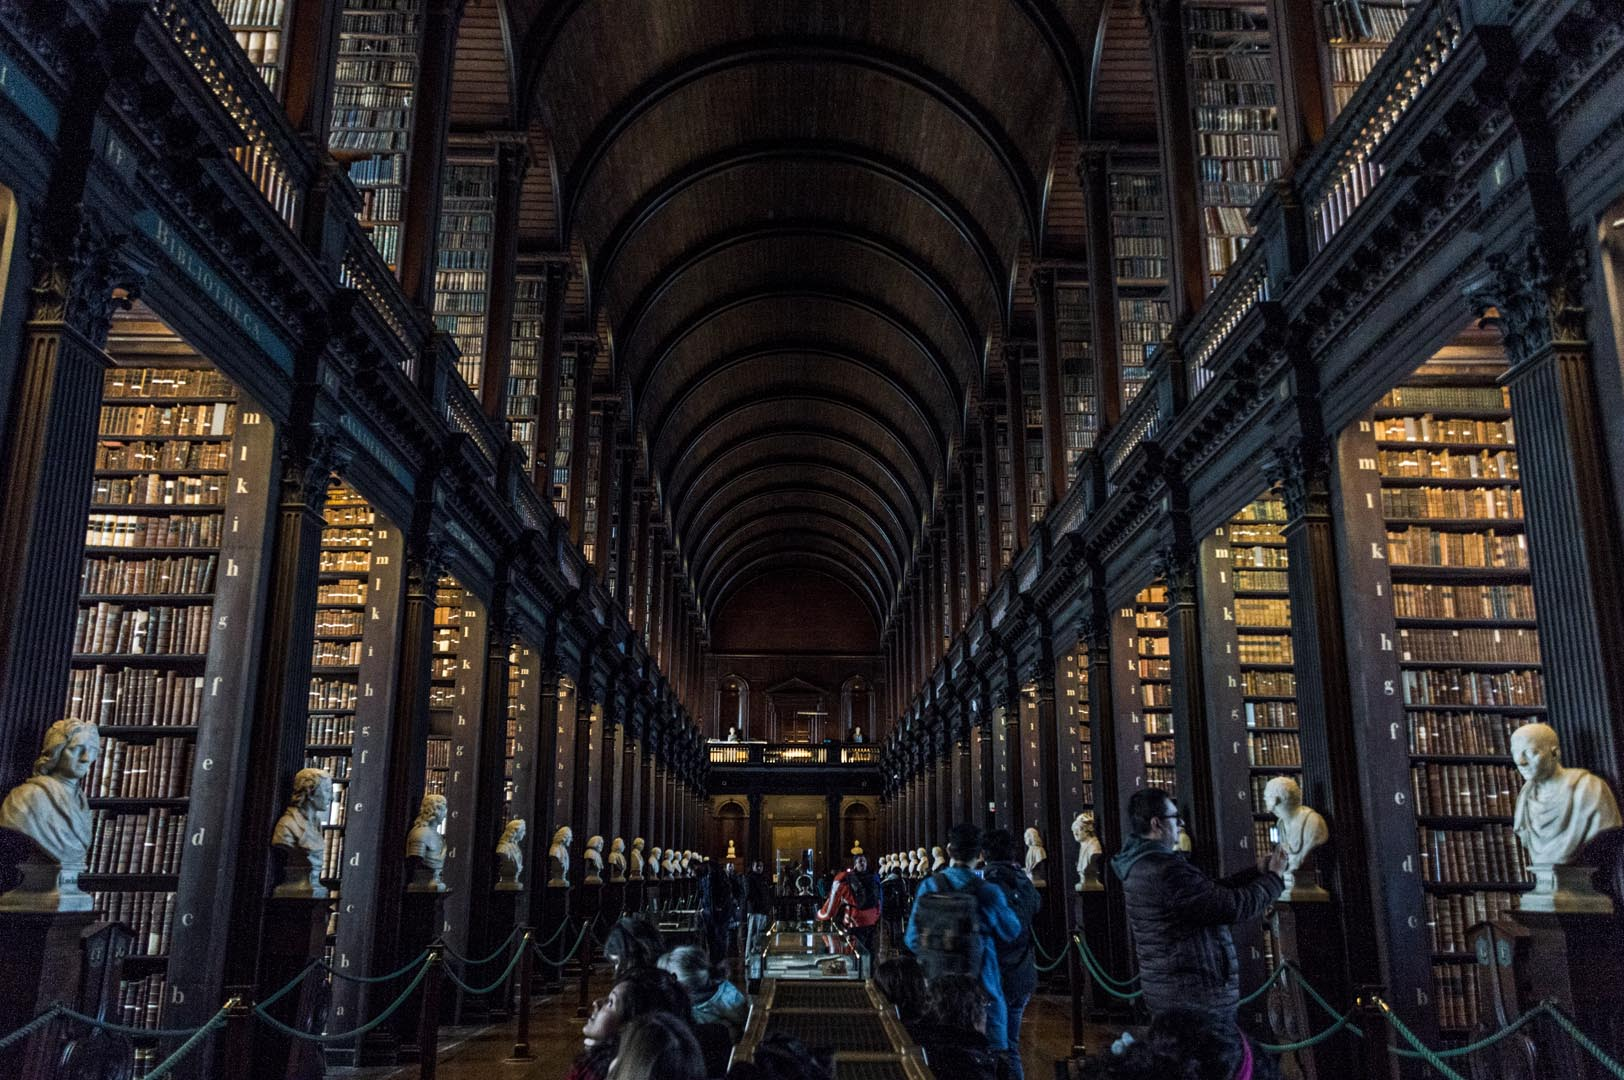 Dublin attractions - Trinity College Library